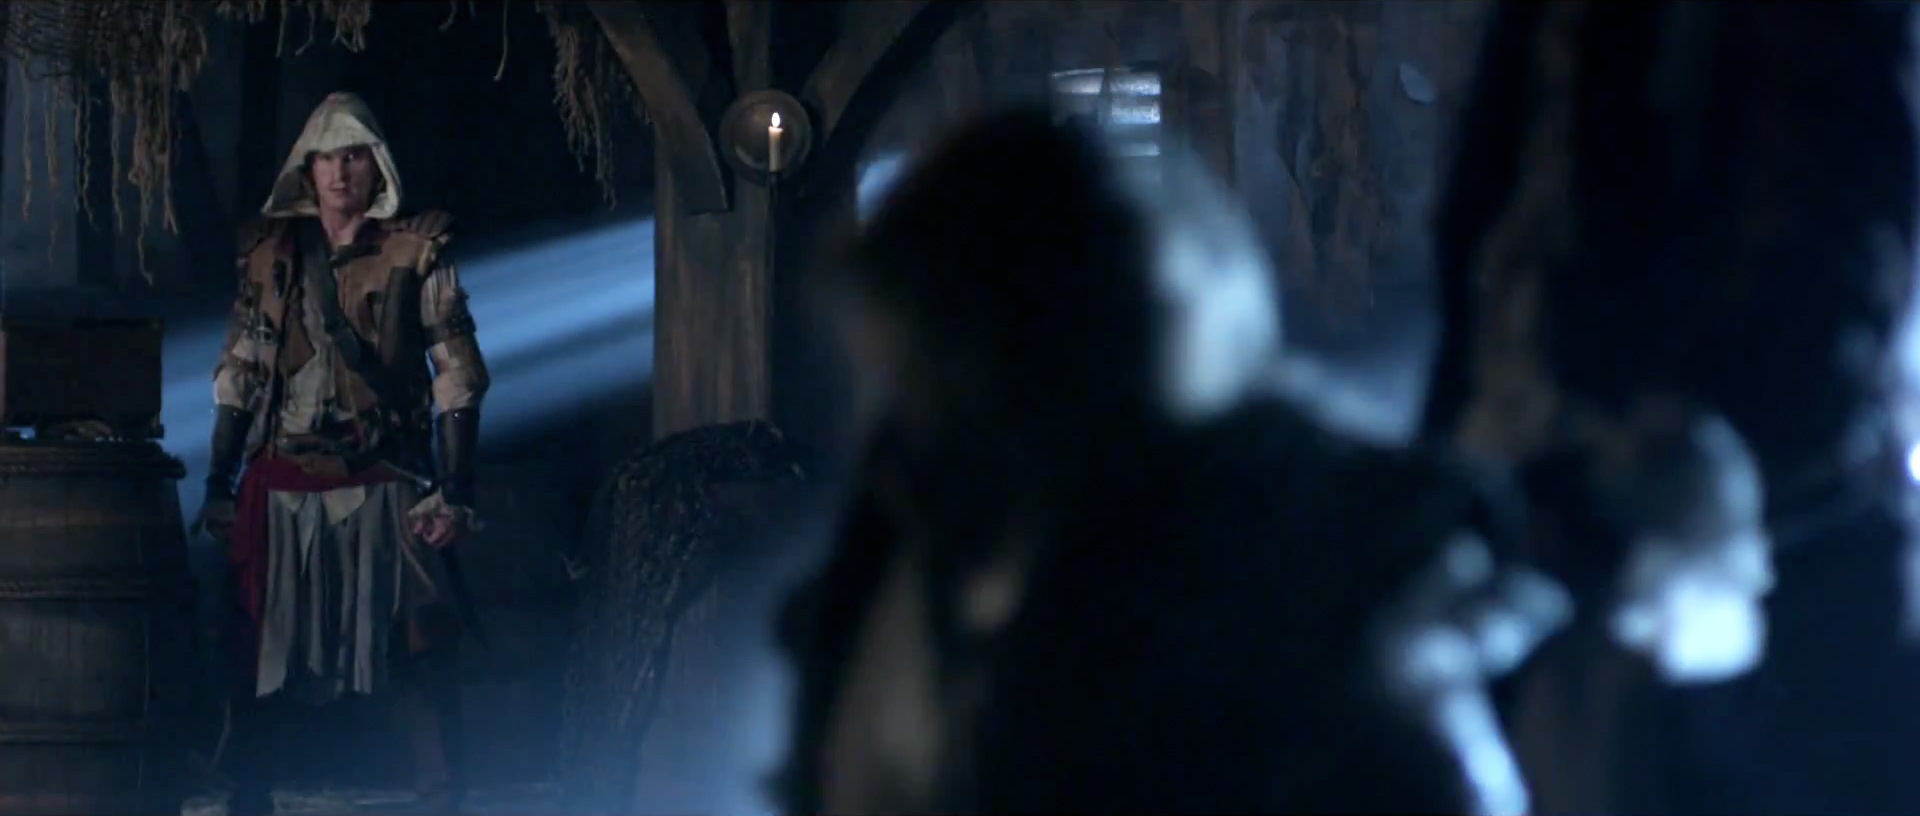 awesome-assassins-creed-short-film-checkmate-11.jpg